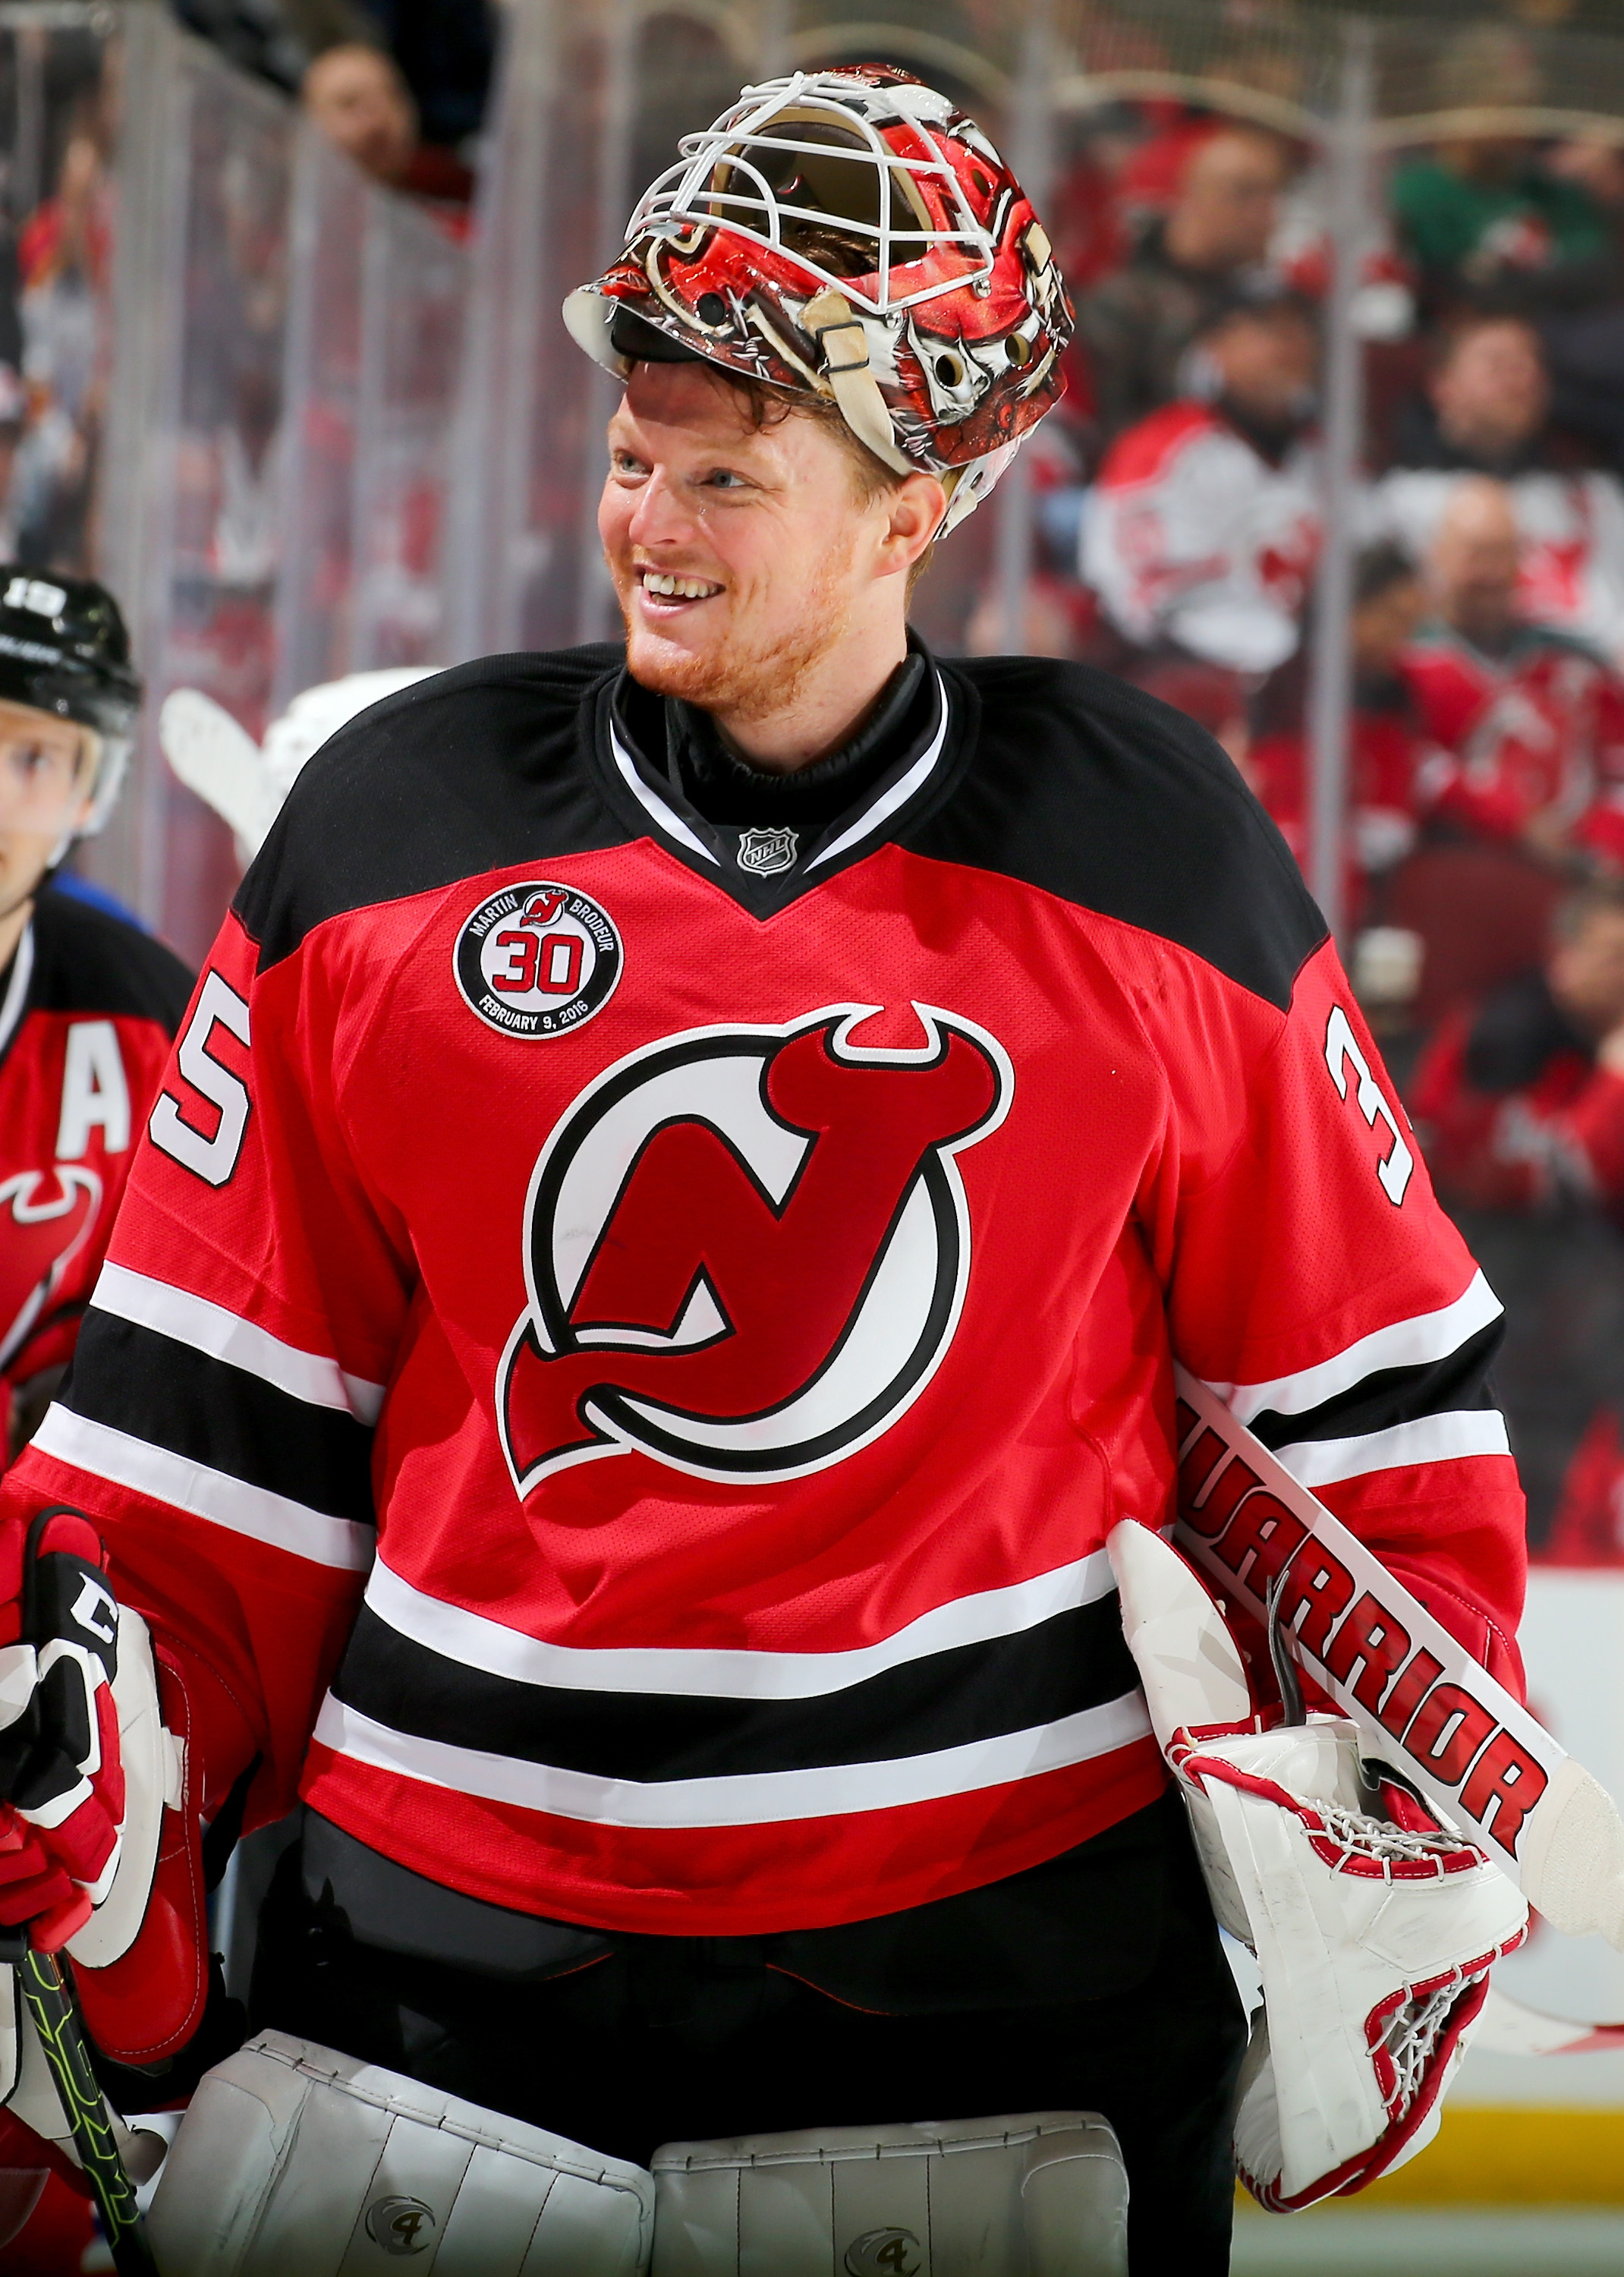 Cory Schneider is likely smiling at another chance at the international game with tonight's announcement.